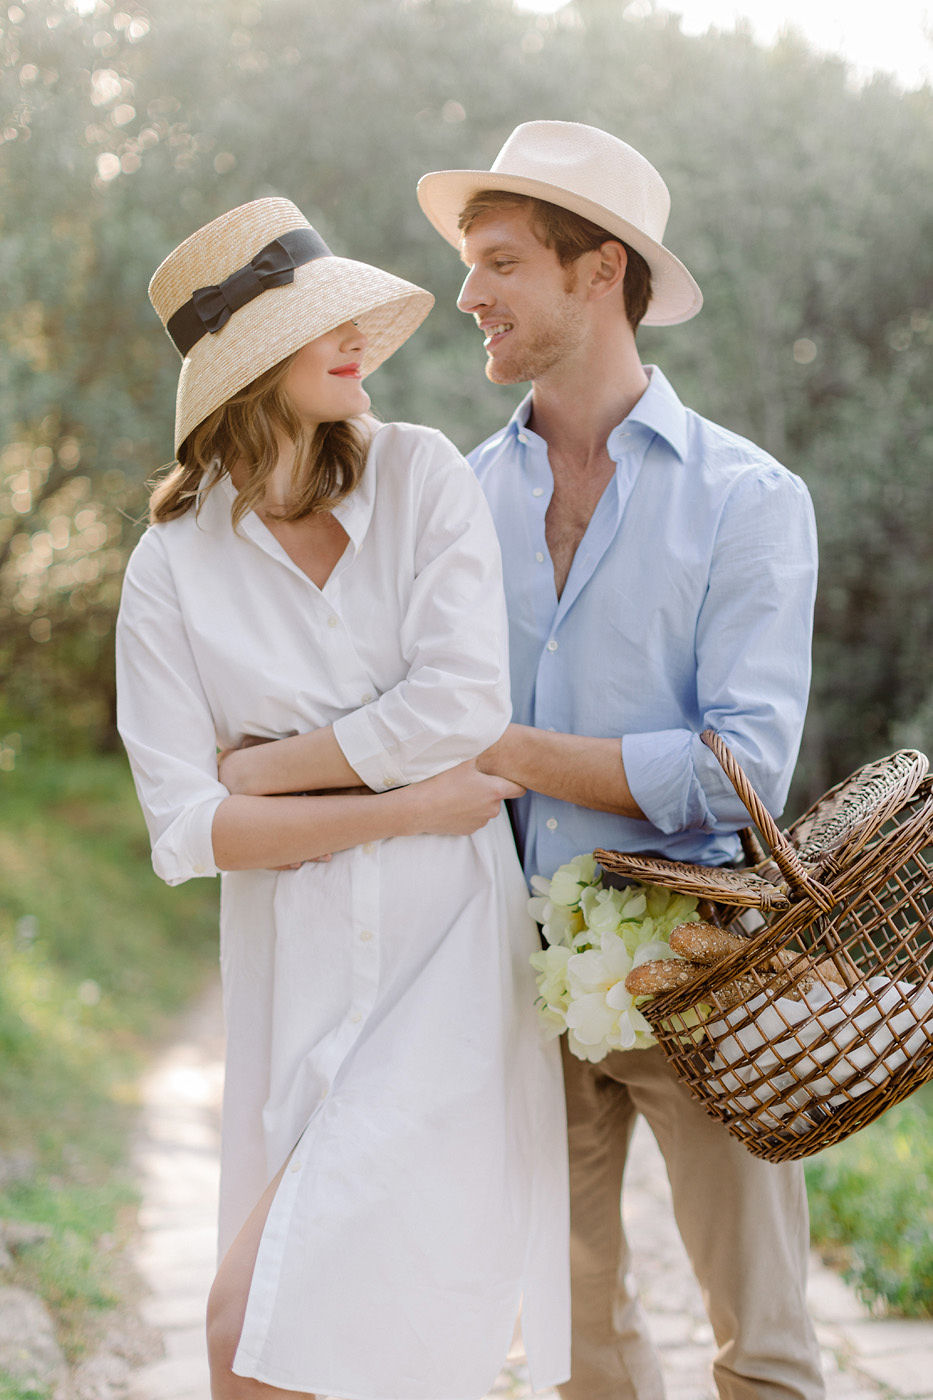 Wedding Proposal In Athens - Romantic Picnic